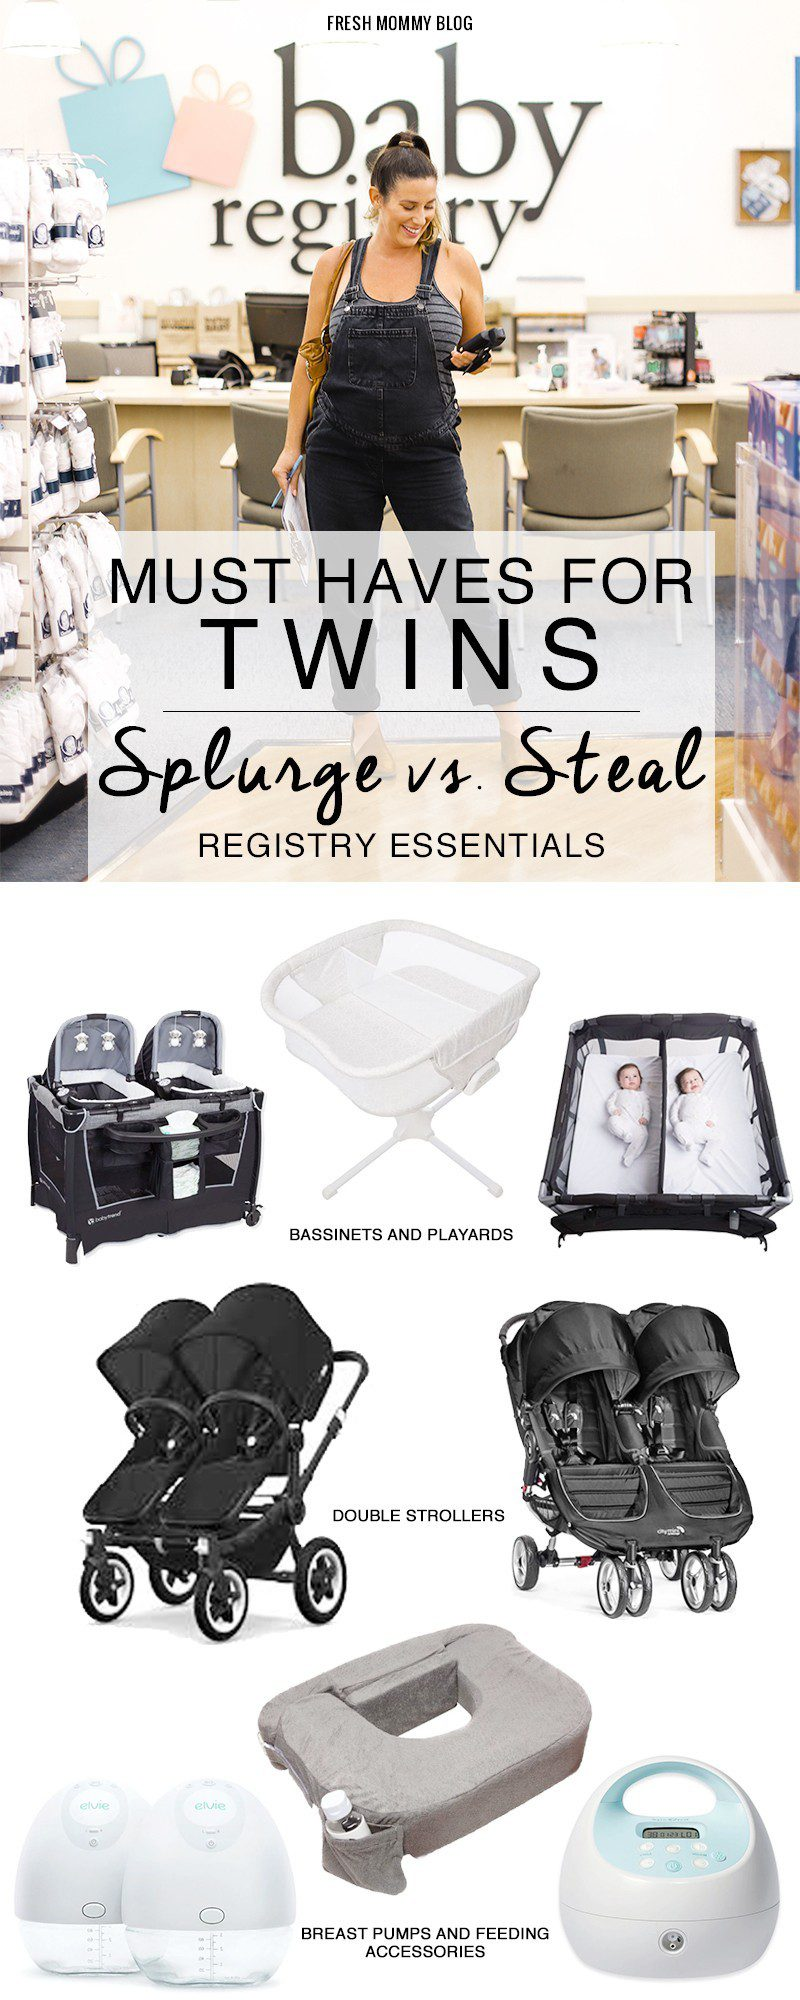 Useful Twin Products and Must Haves for Twins! Our Twin Registry Essentials - Splurge vs Steal by top US lifestyle blogger, Tabitha Blue of Fresh Mommy Blog